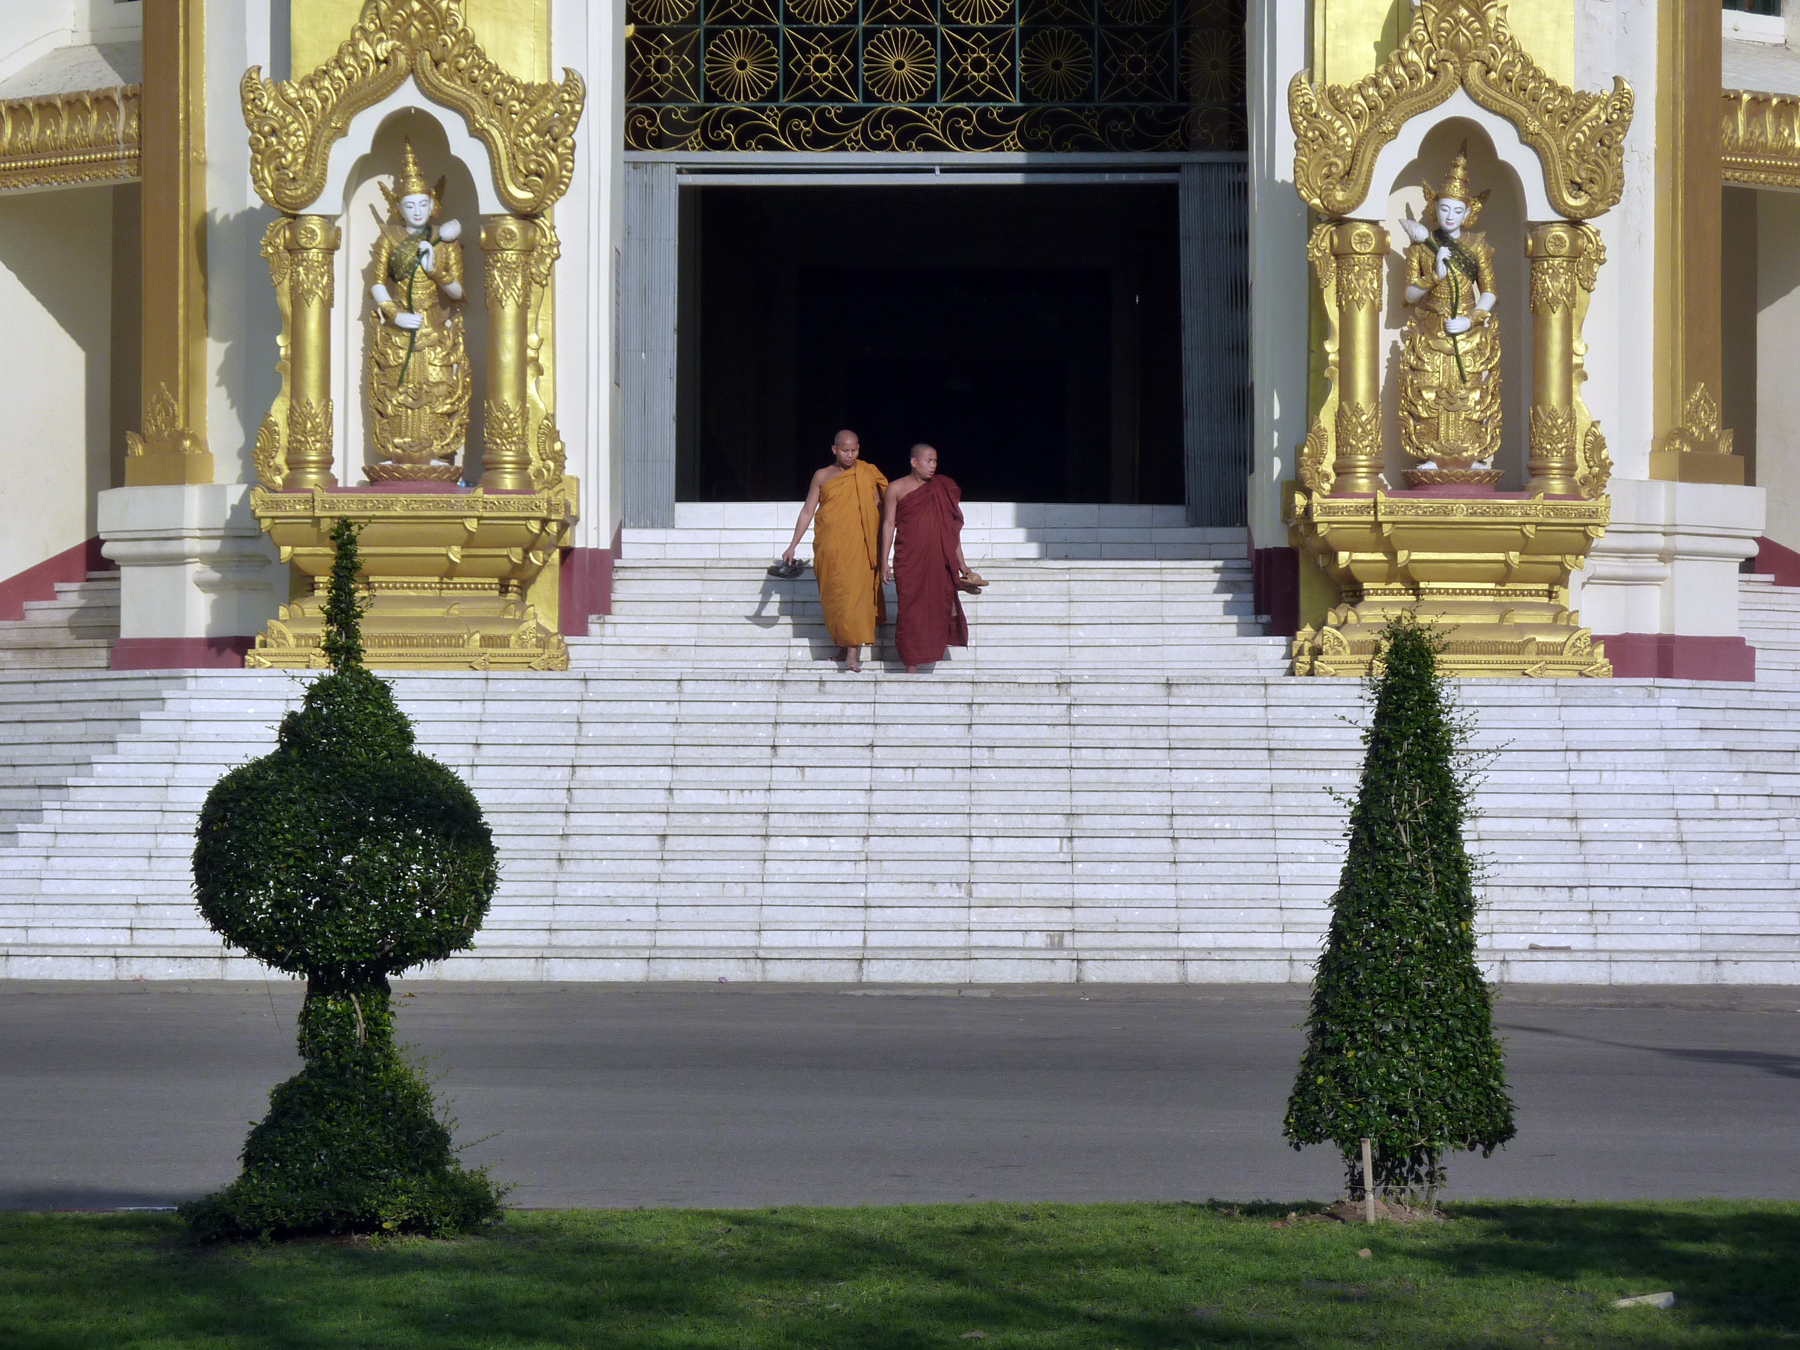 Thai monk on vacation caught glue huffing, stealing